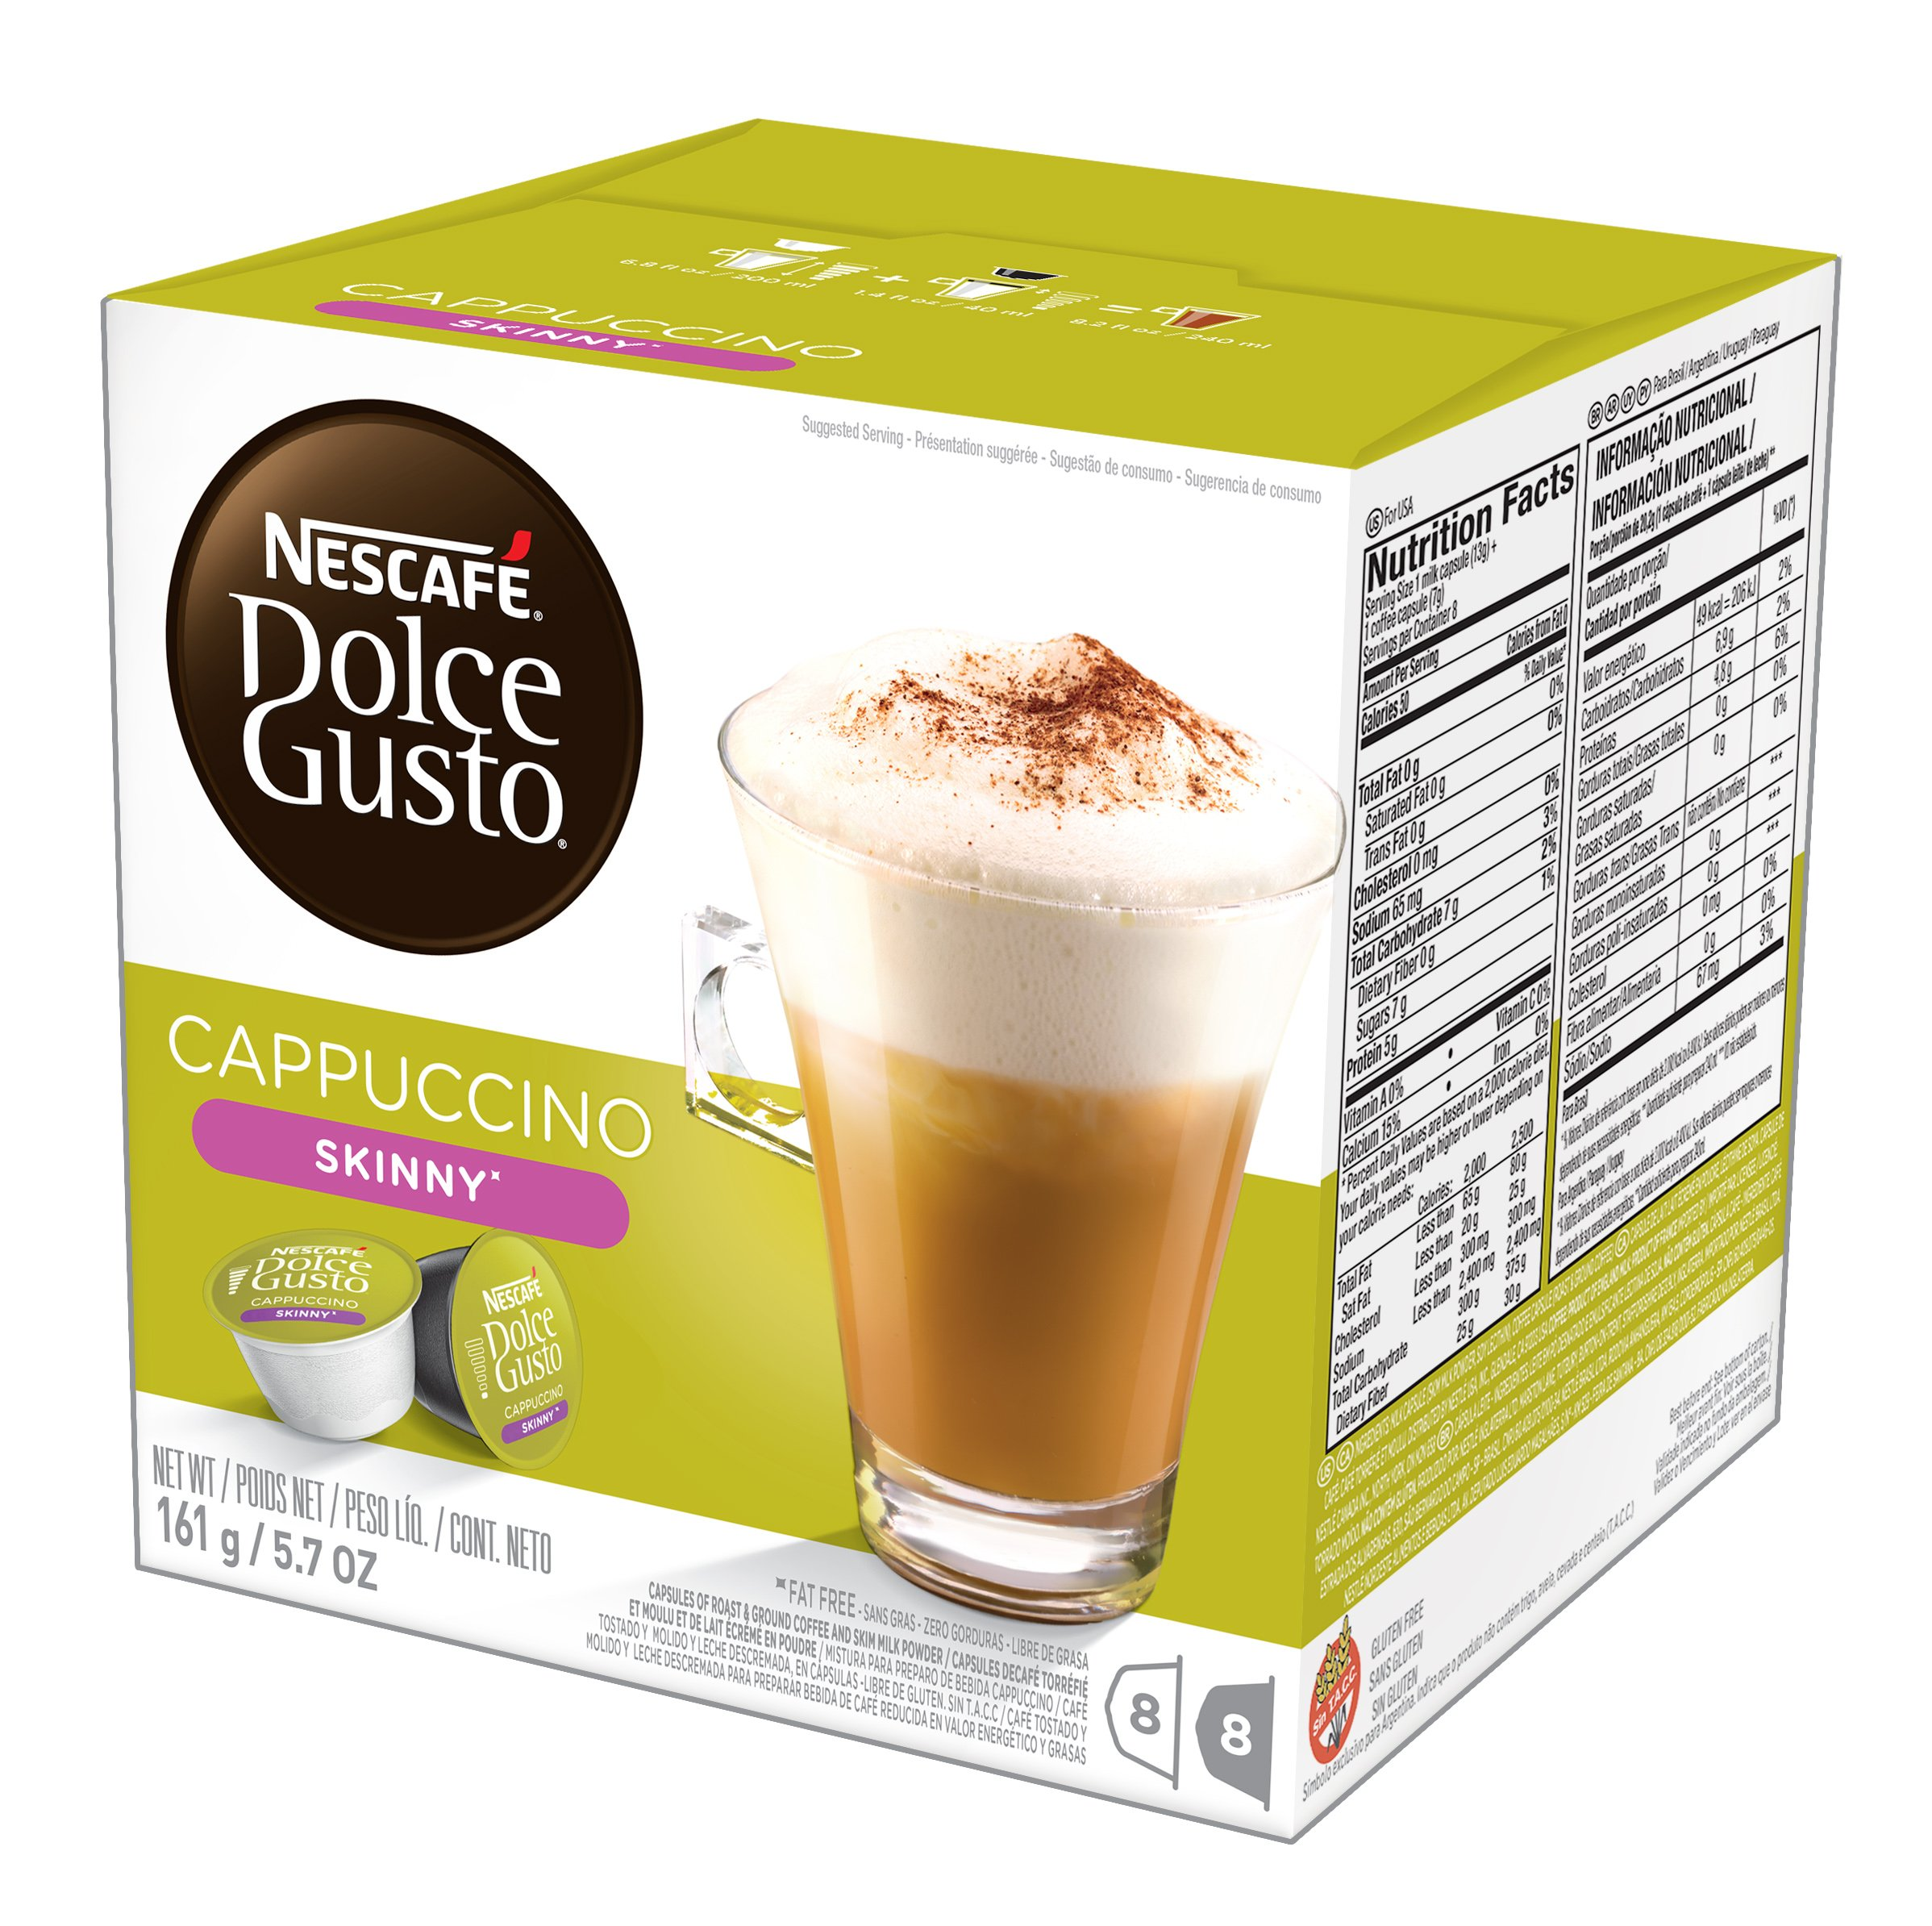 NESCAFÉ Dolce Gusto Coffee Capsules, Skinny Cappuccino, 48 Single Serve Pods, (Makes